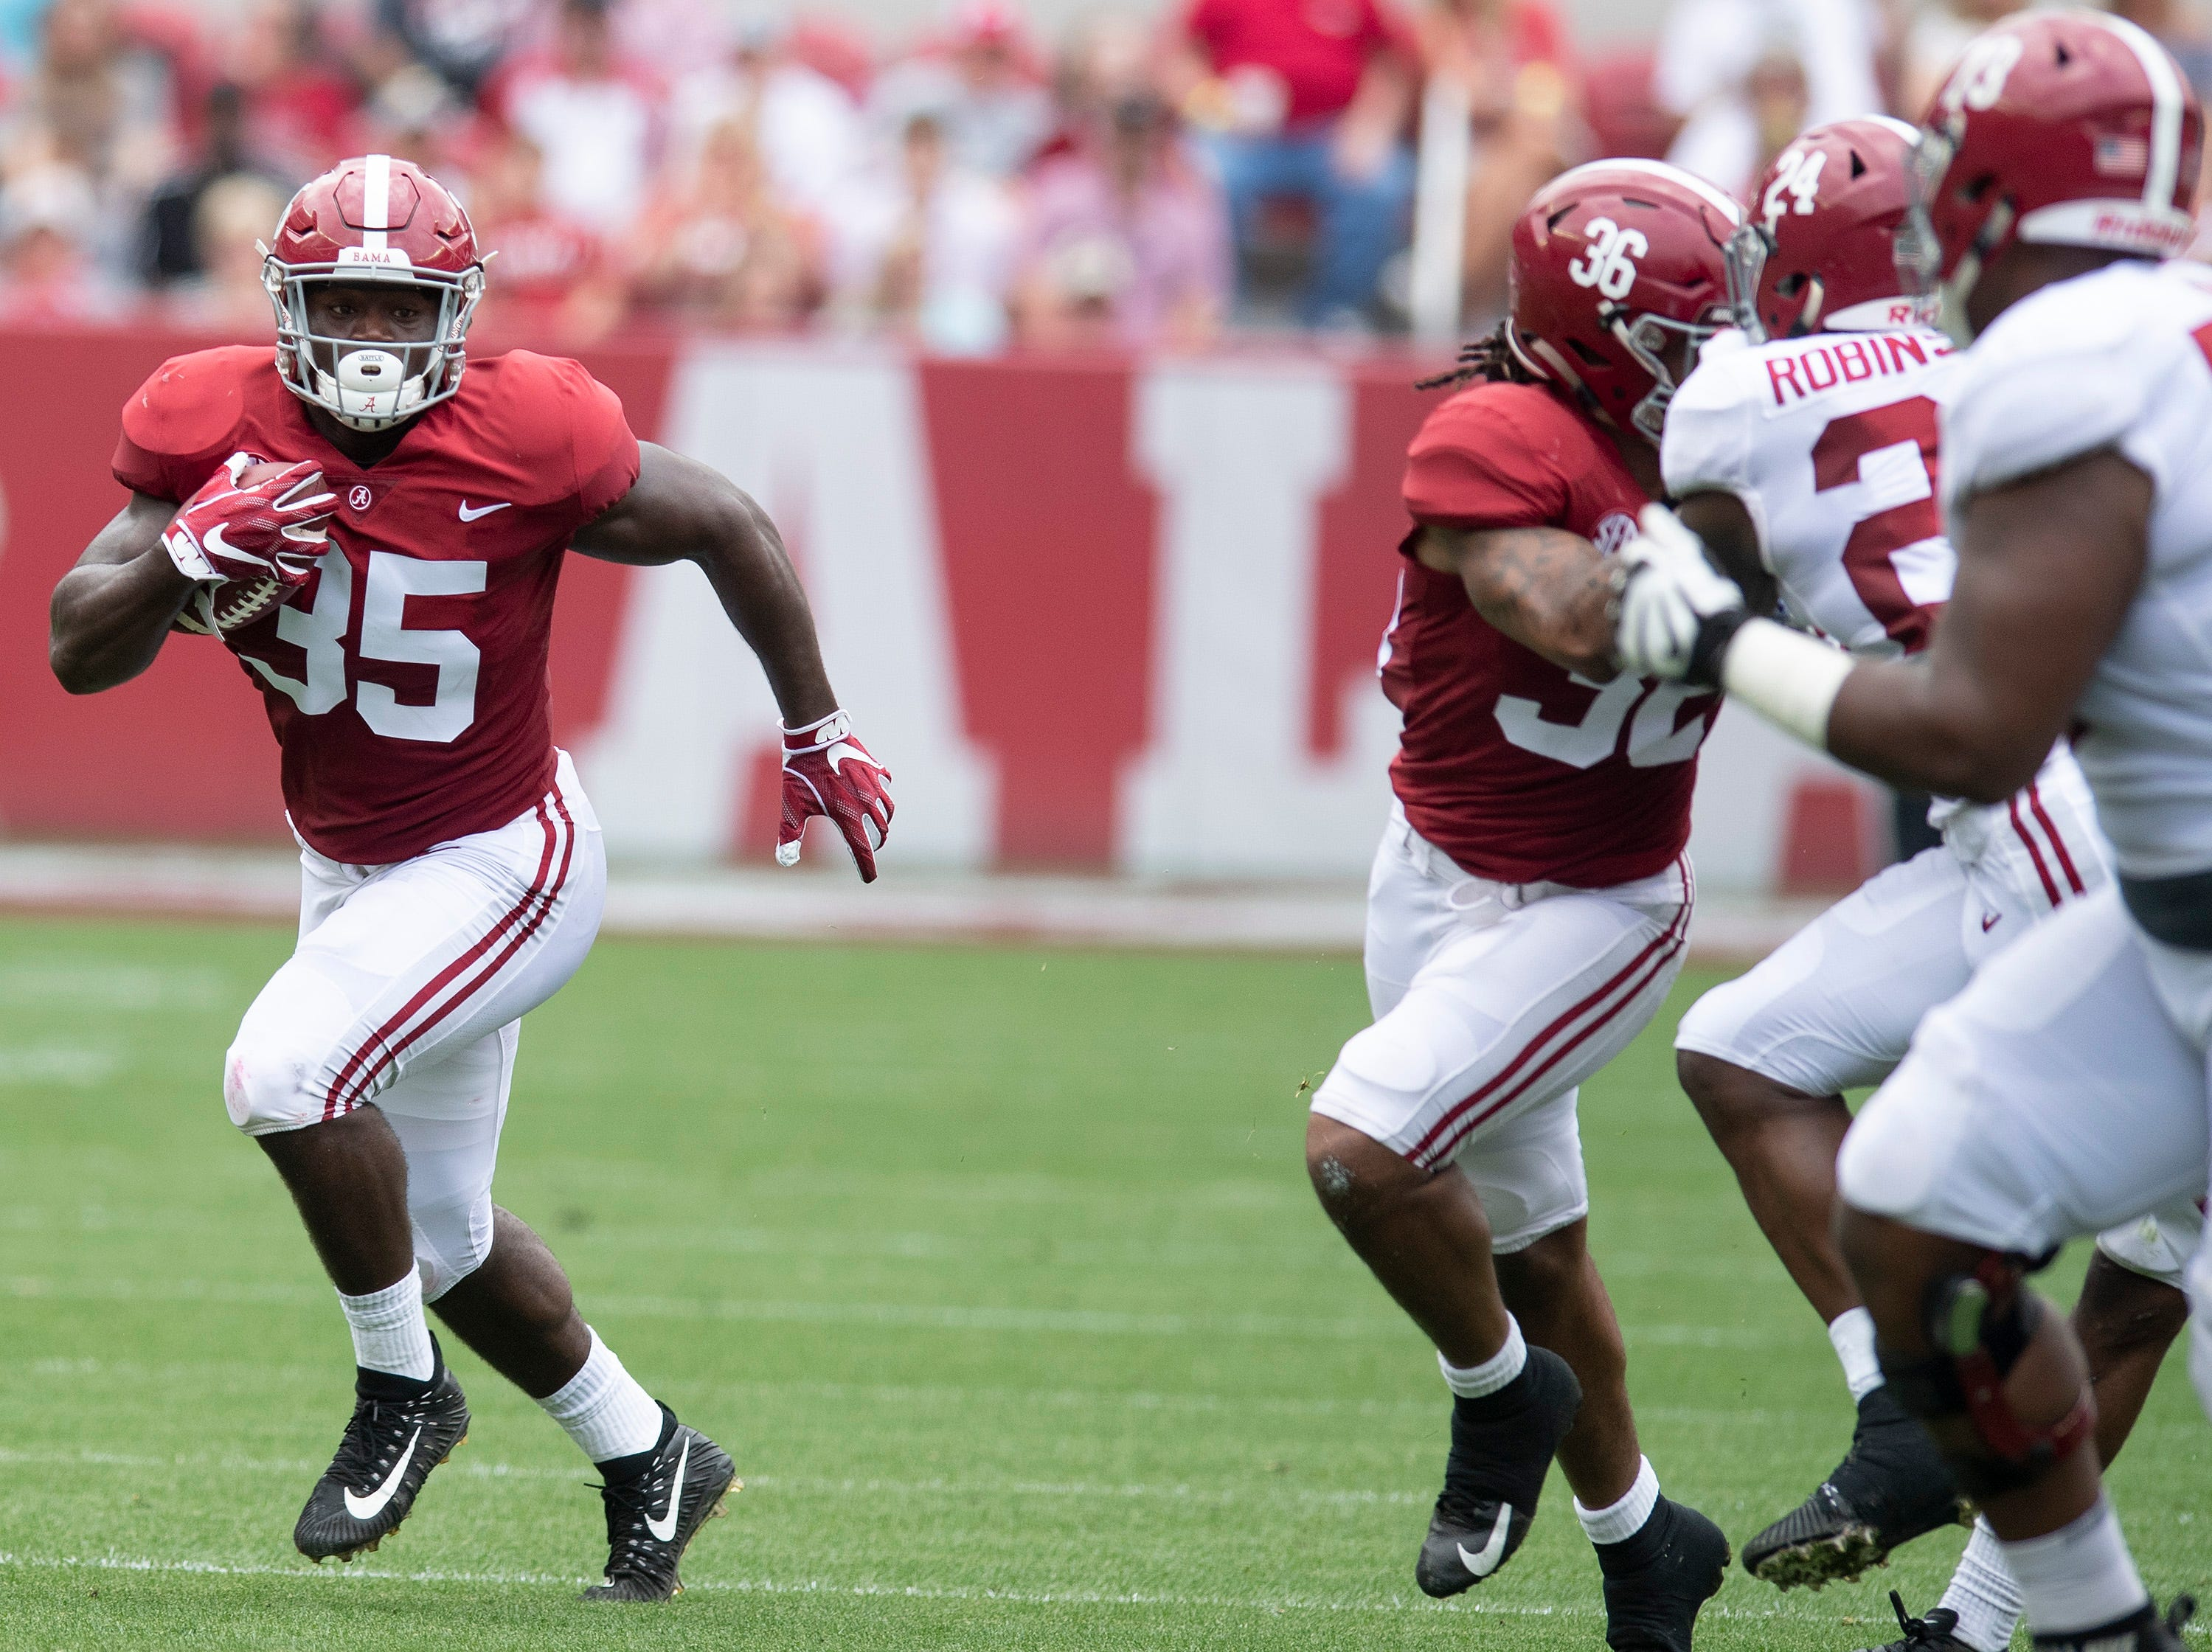 Linebacker Shane Lee (35) returns an interception during first half action in the Alabama A-Day spring football scrimmage game at Bryant Denny Stadium in Tuscaloosa, Ala., on Saturday April 13, 2019.